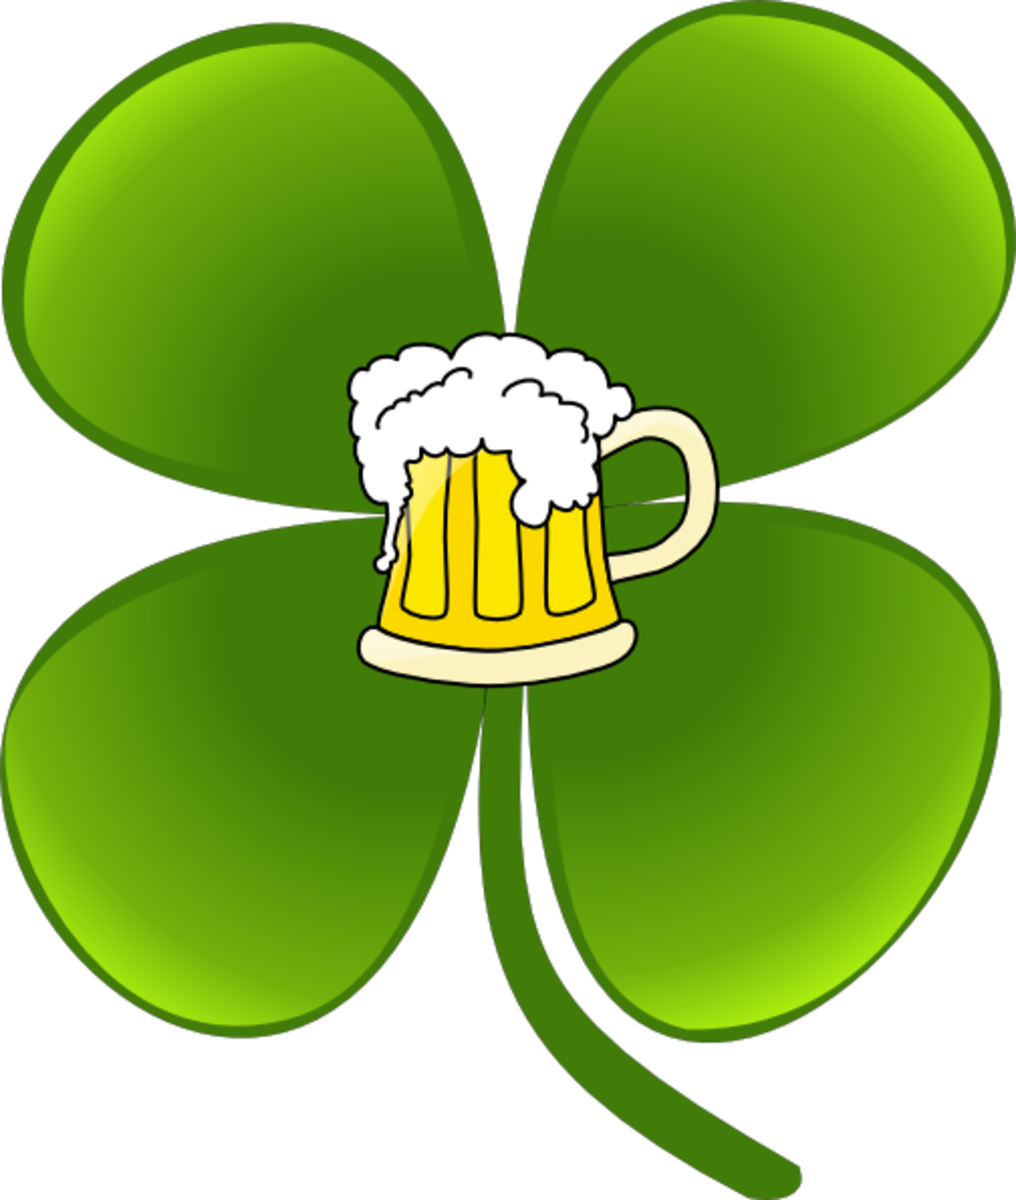 Four-Leaf Shamrock with Beer